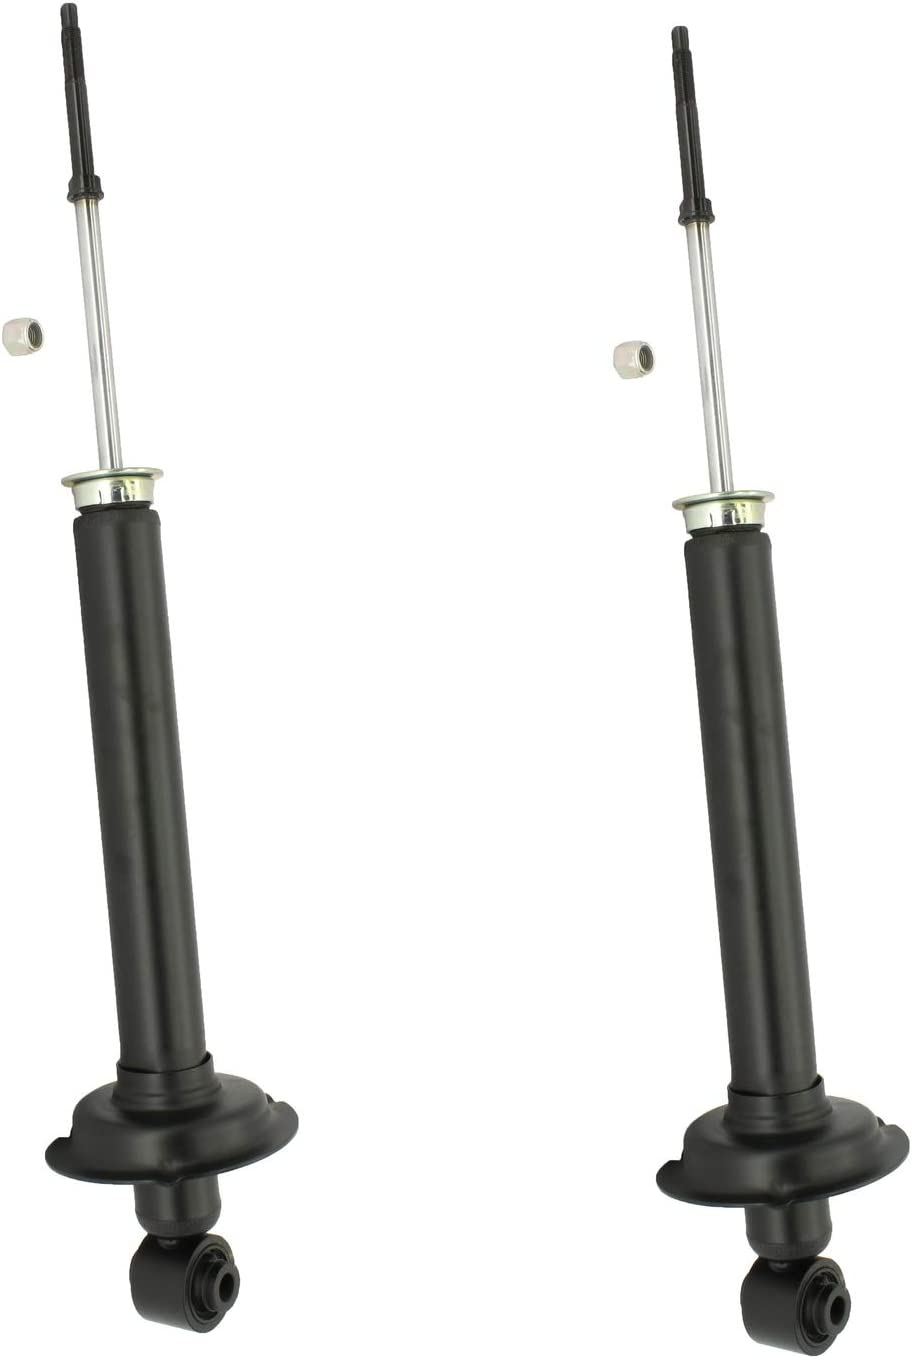 NEW Pair Set of 2 Rear KYB Excel-G Struts For Lexus GS300 GS400 GS430